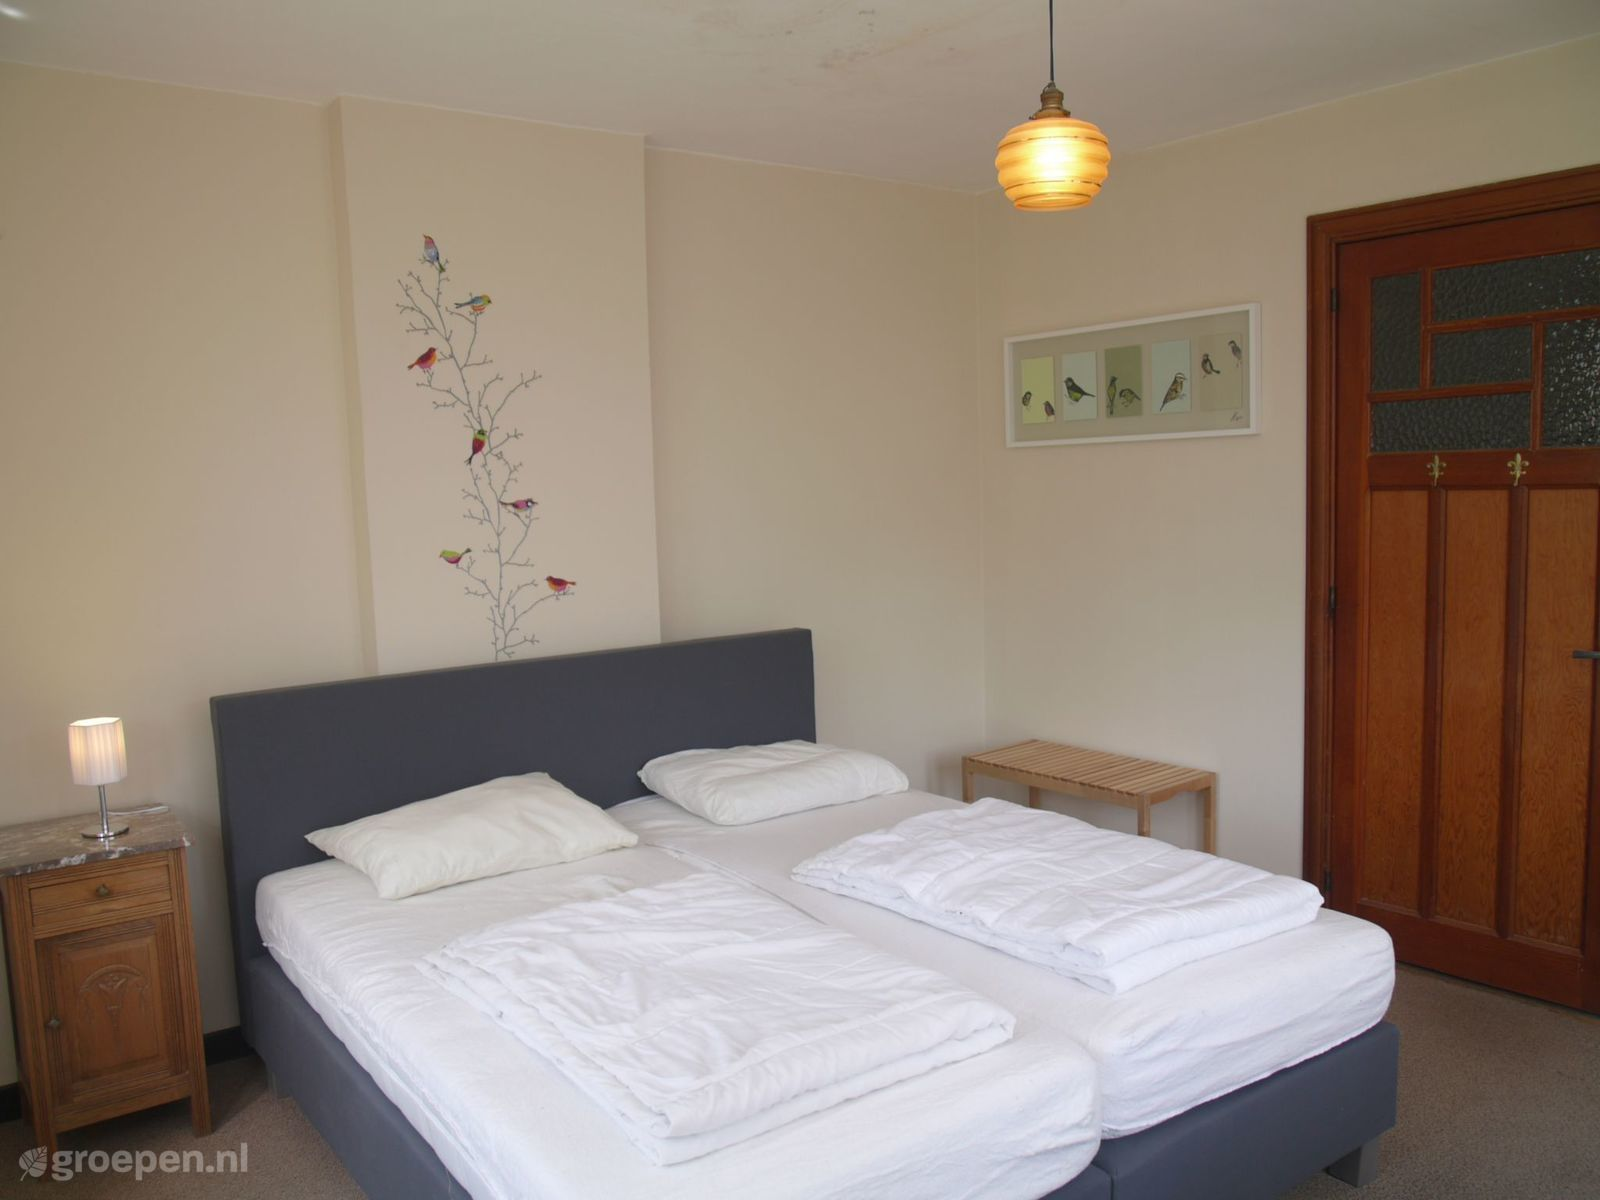 Group accommodation La Roche-en-Ardenne